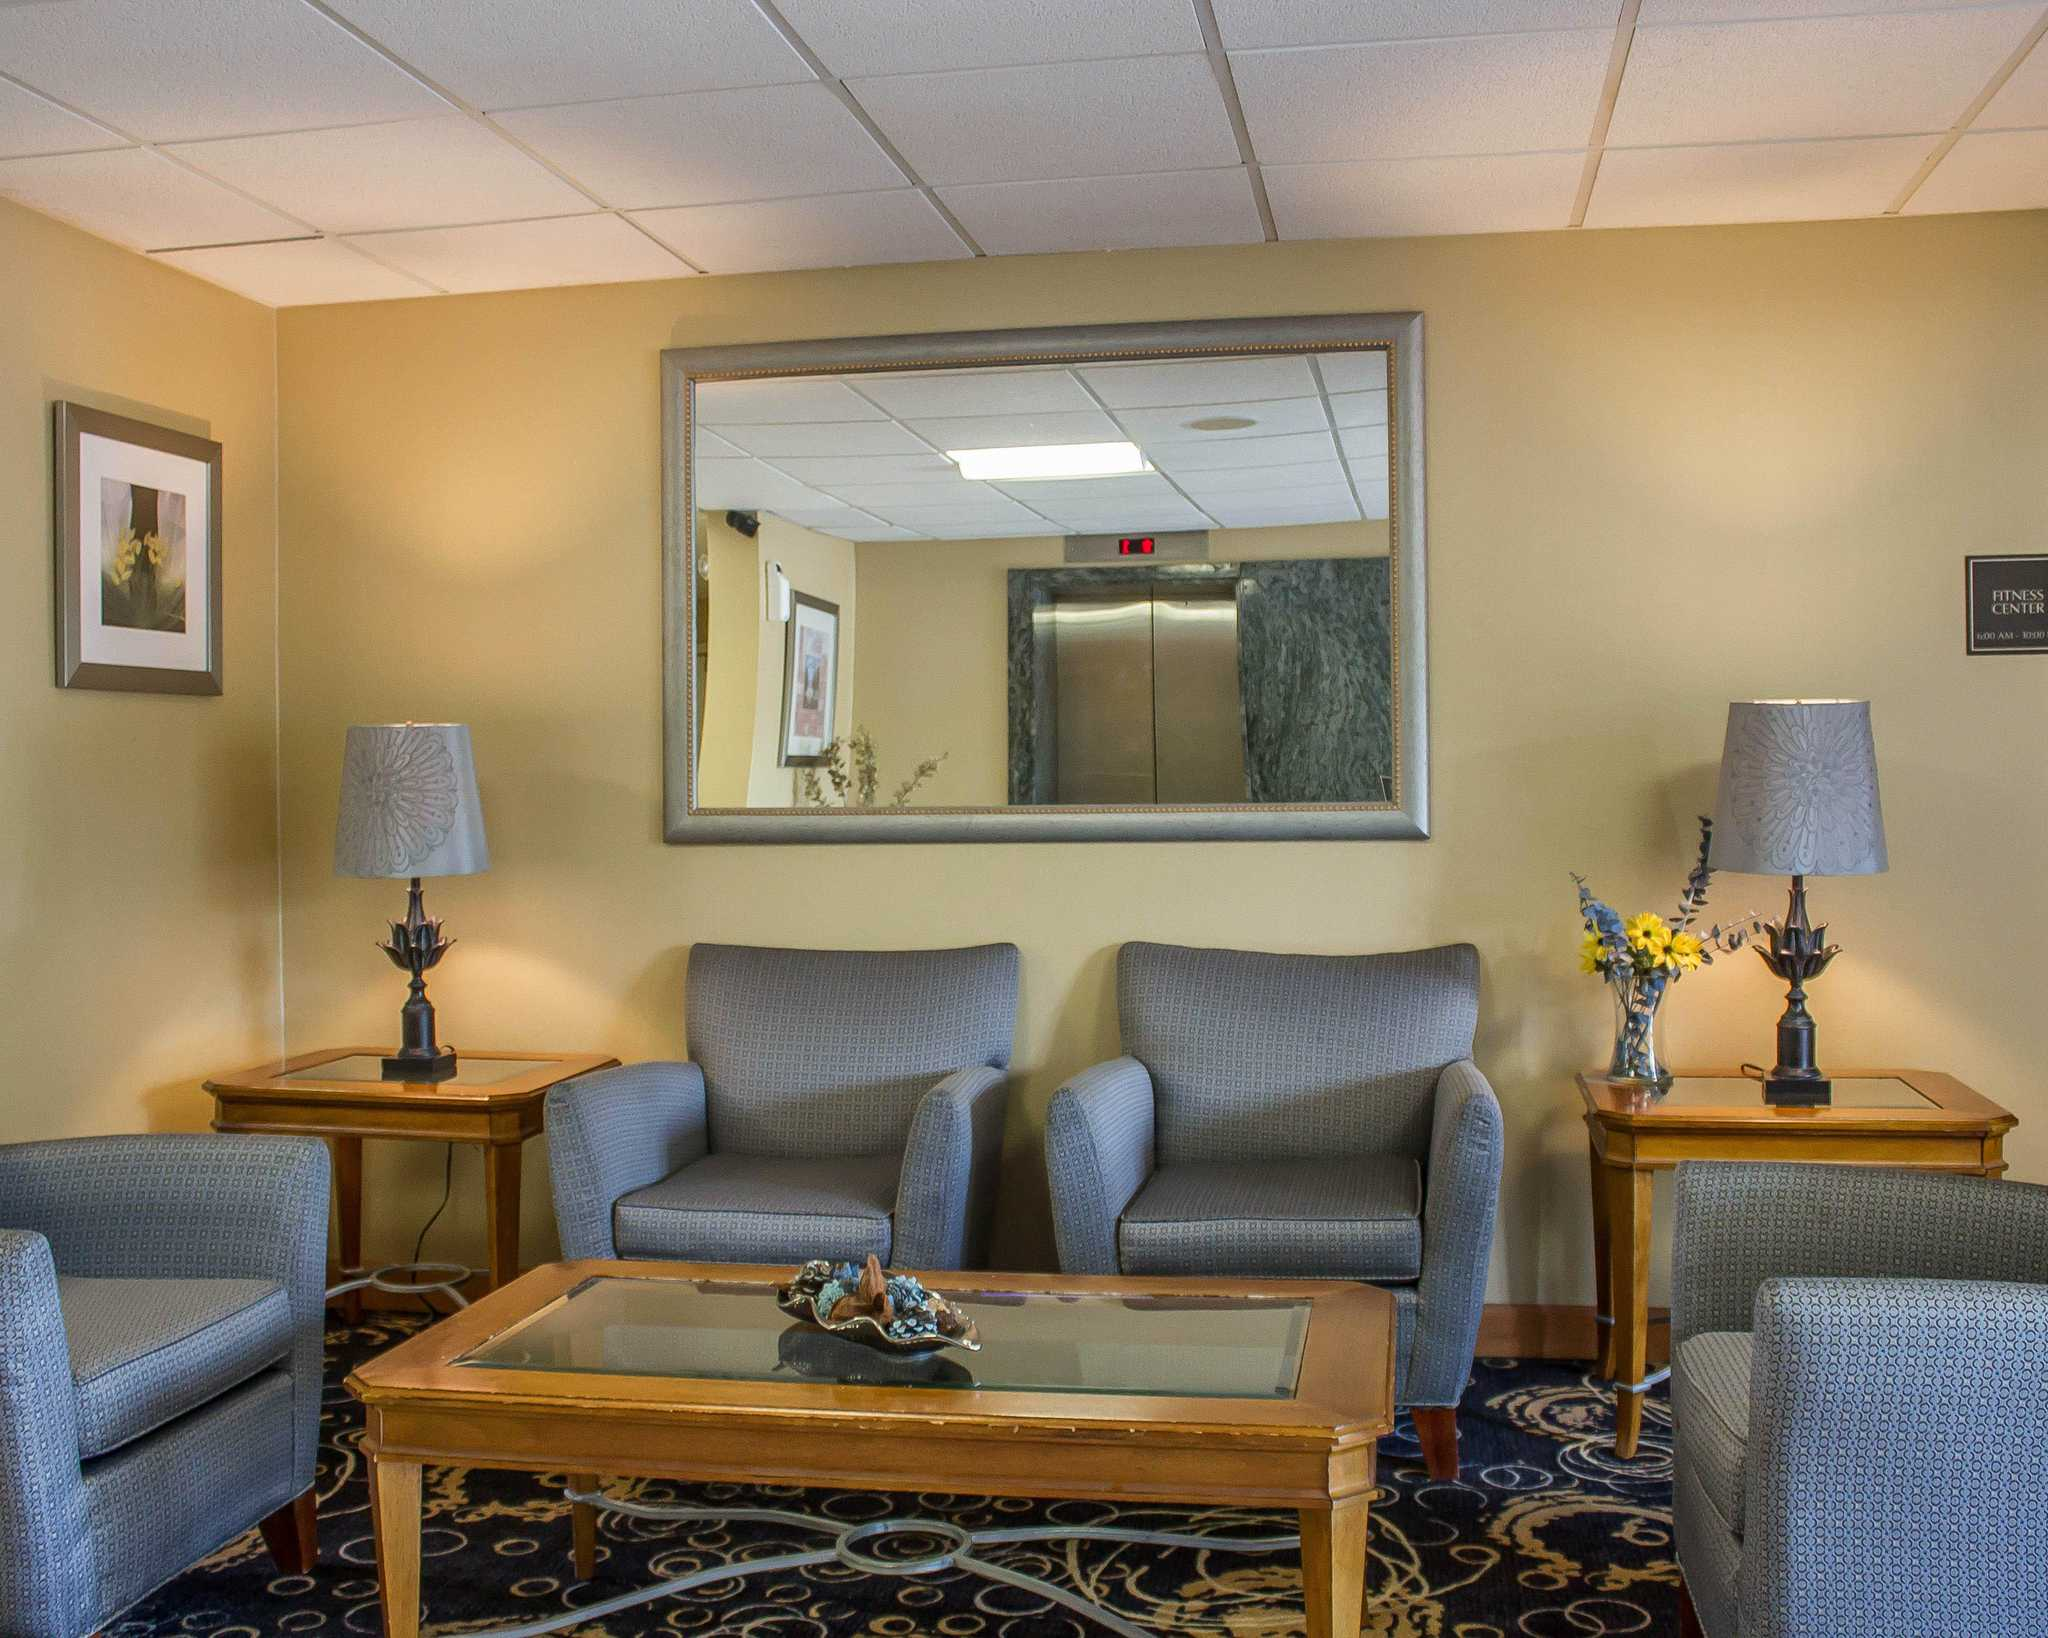 Hotels Near Wethersfield Ct